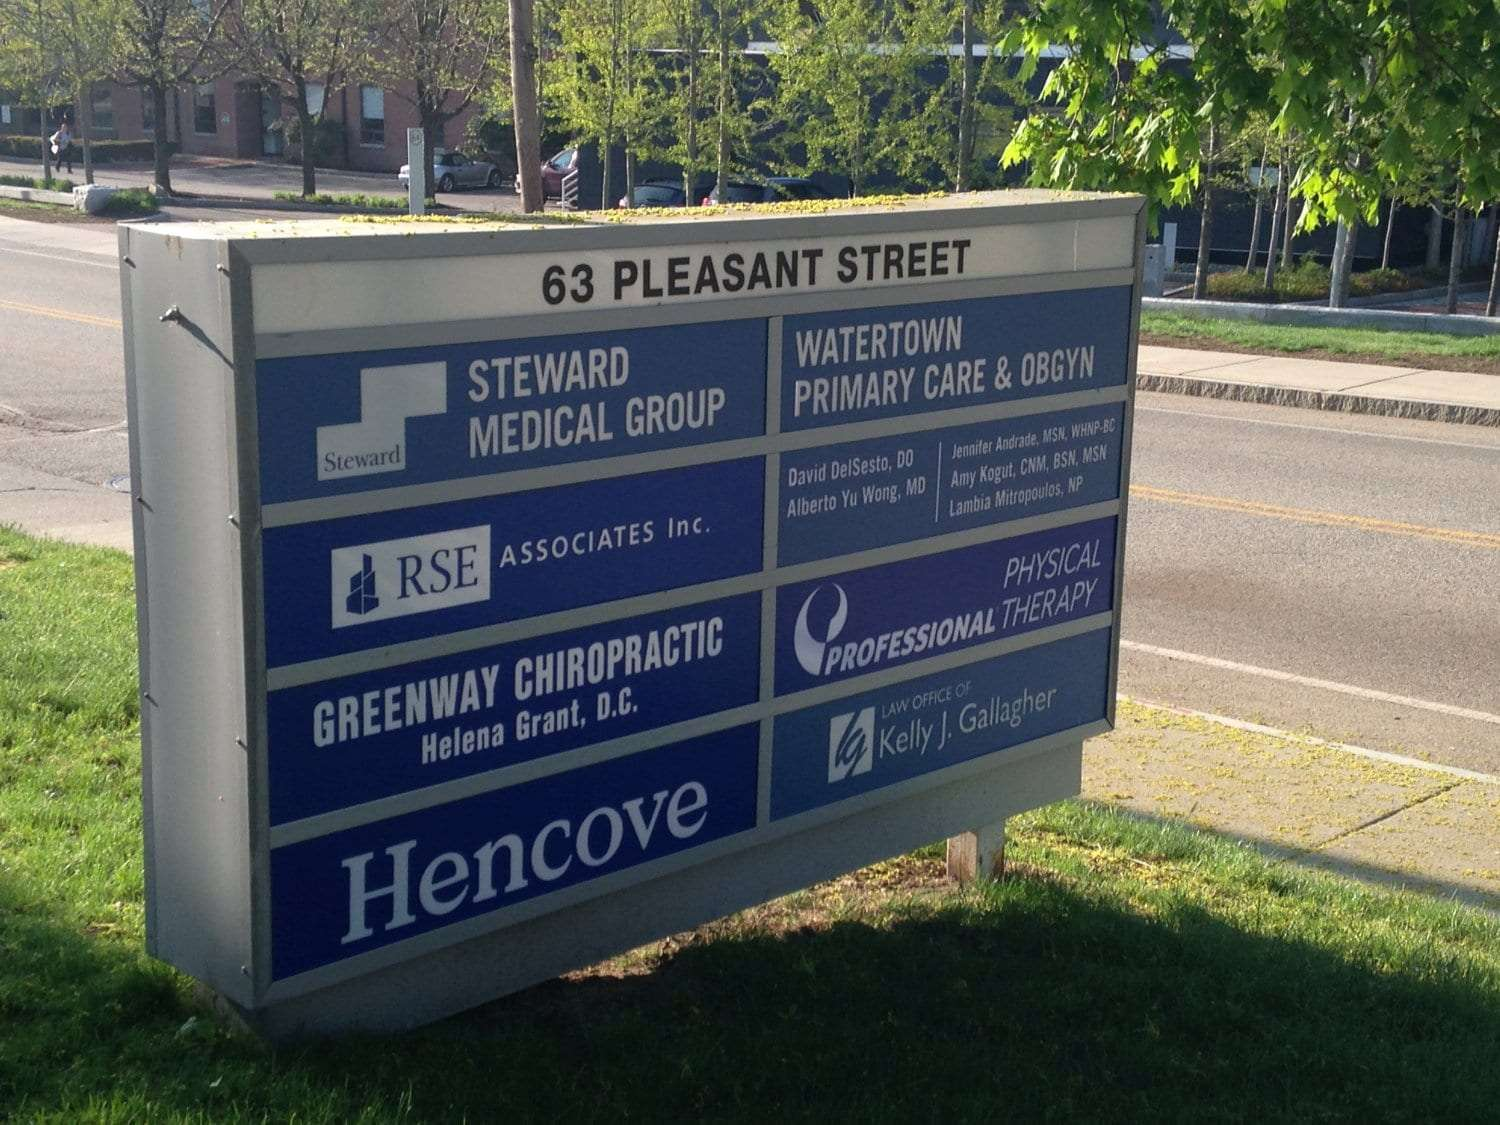 Here is an image of the sign outside our physical therapy clinic in Watertown, Massachusetts.